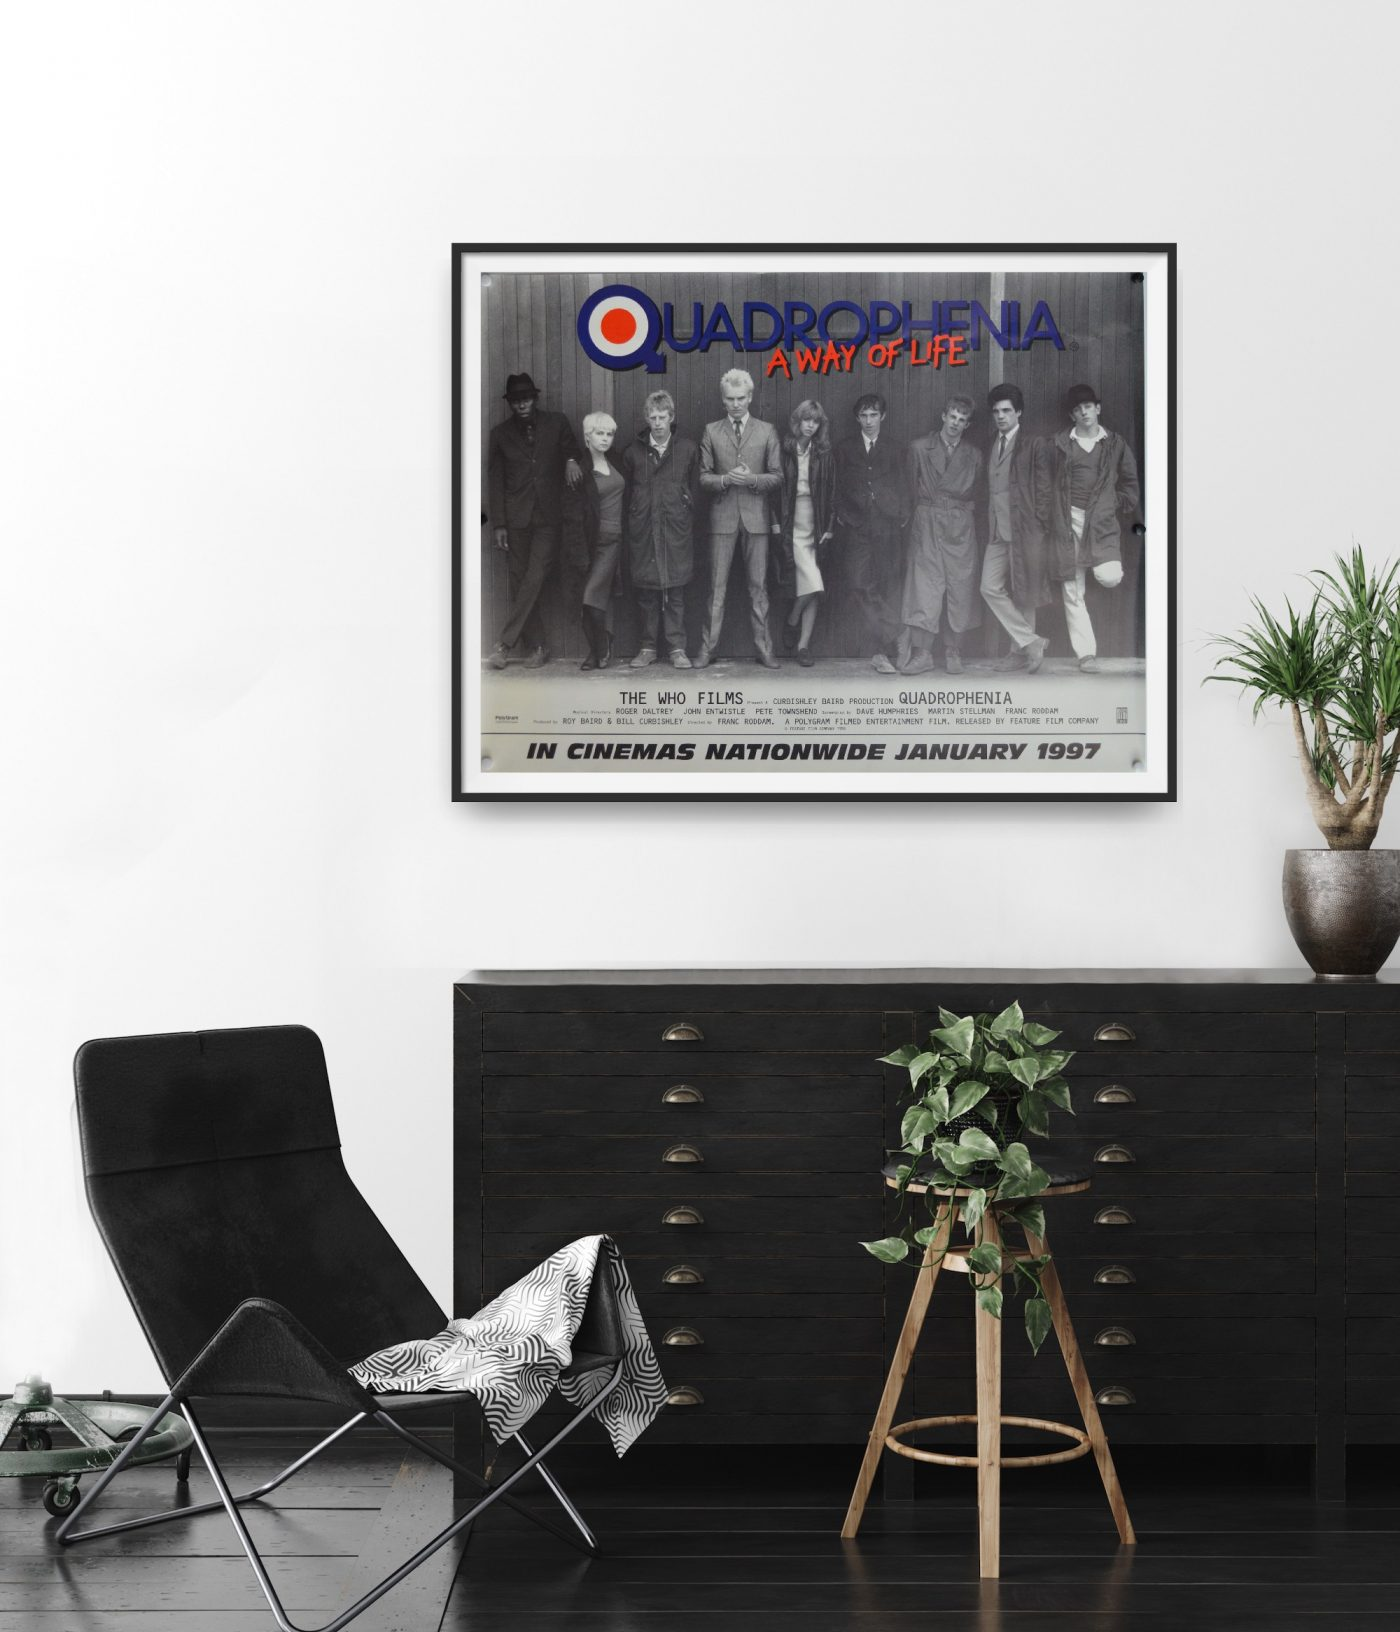 This is a framed cinema poster for the film Quadrophenia hung in a room to show the scale.